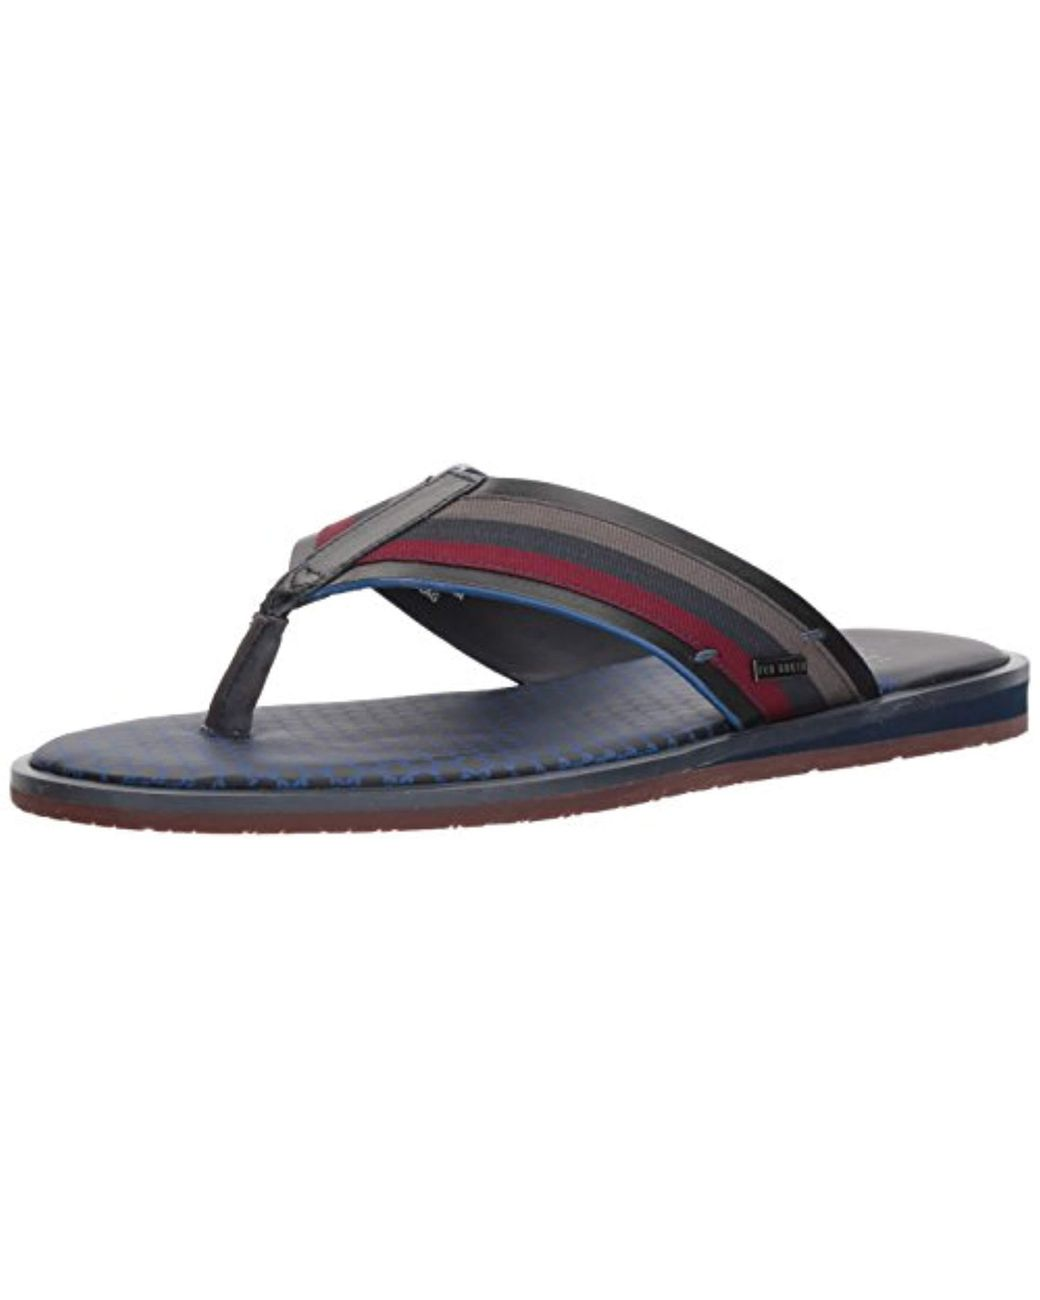 6230fa96c49f Lyst - Ted Baker Knowlun Flip-flop in Blue for Men - Save 19%